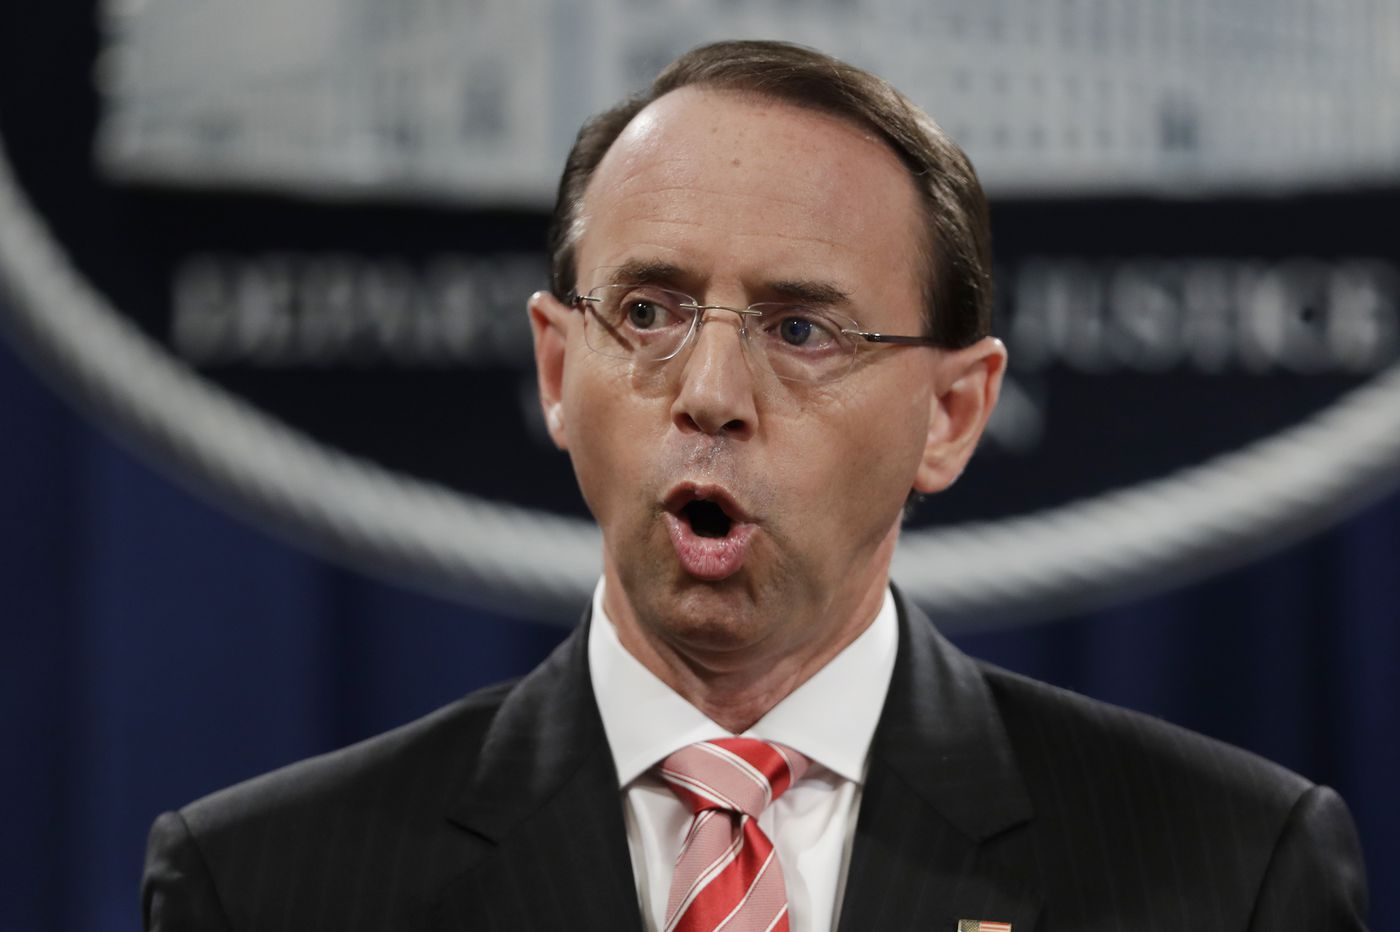 Rosenstein plans to leave Justice Dept. shortly after Barr confirmed